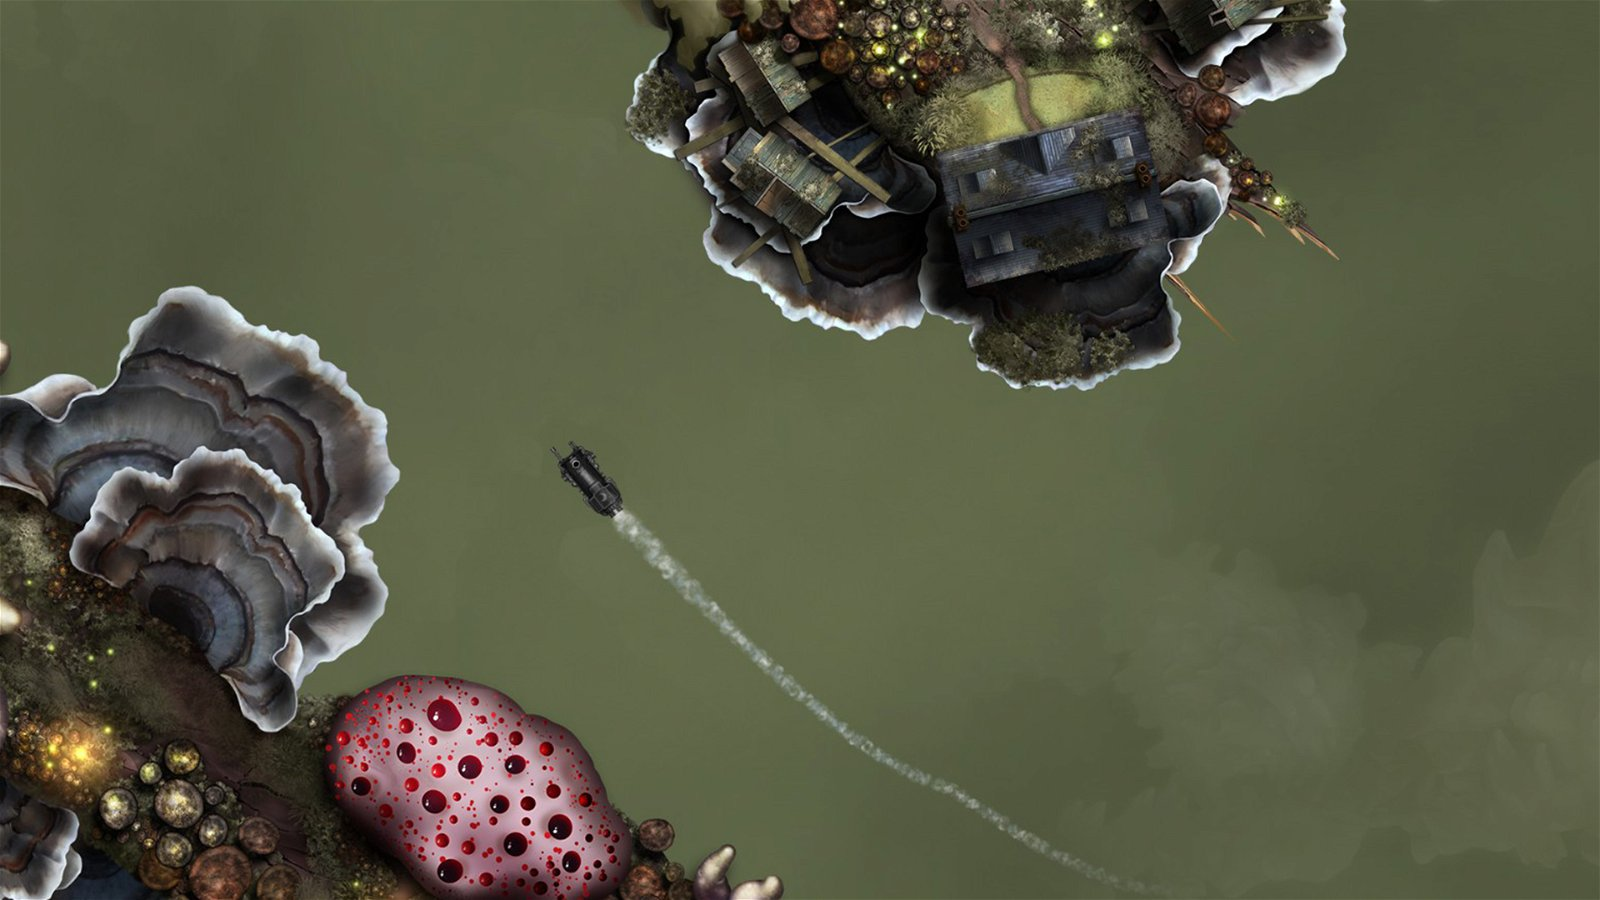 Sunless Skies Preview - The Endless Black Nothing